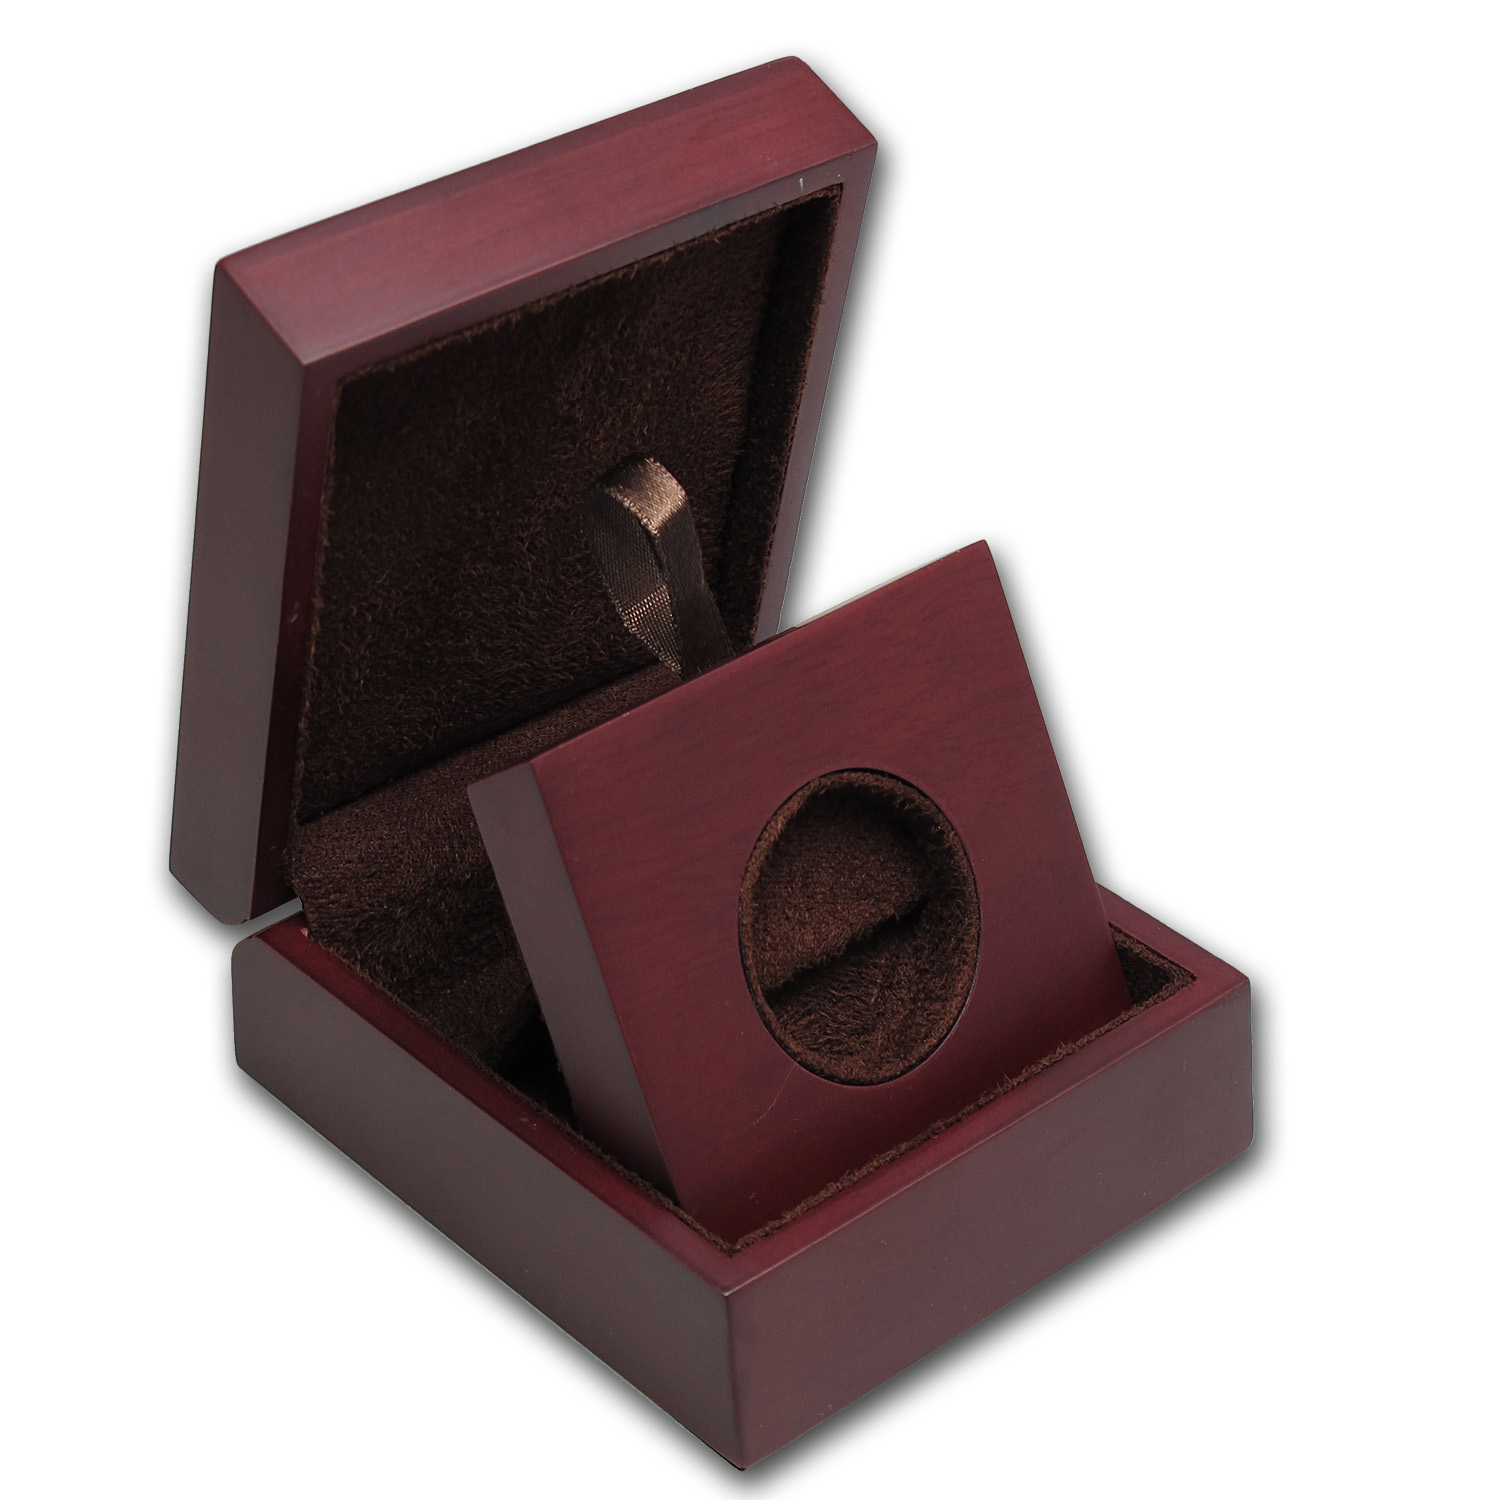 APMEX Wood Presentation Box - 1 oz Perth Gold S1/Silver S1